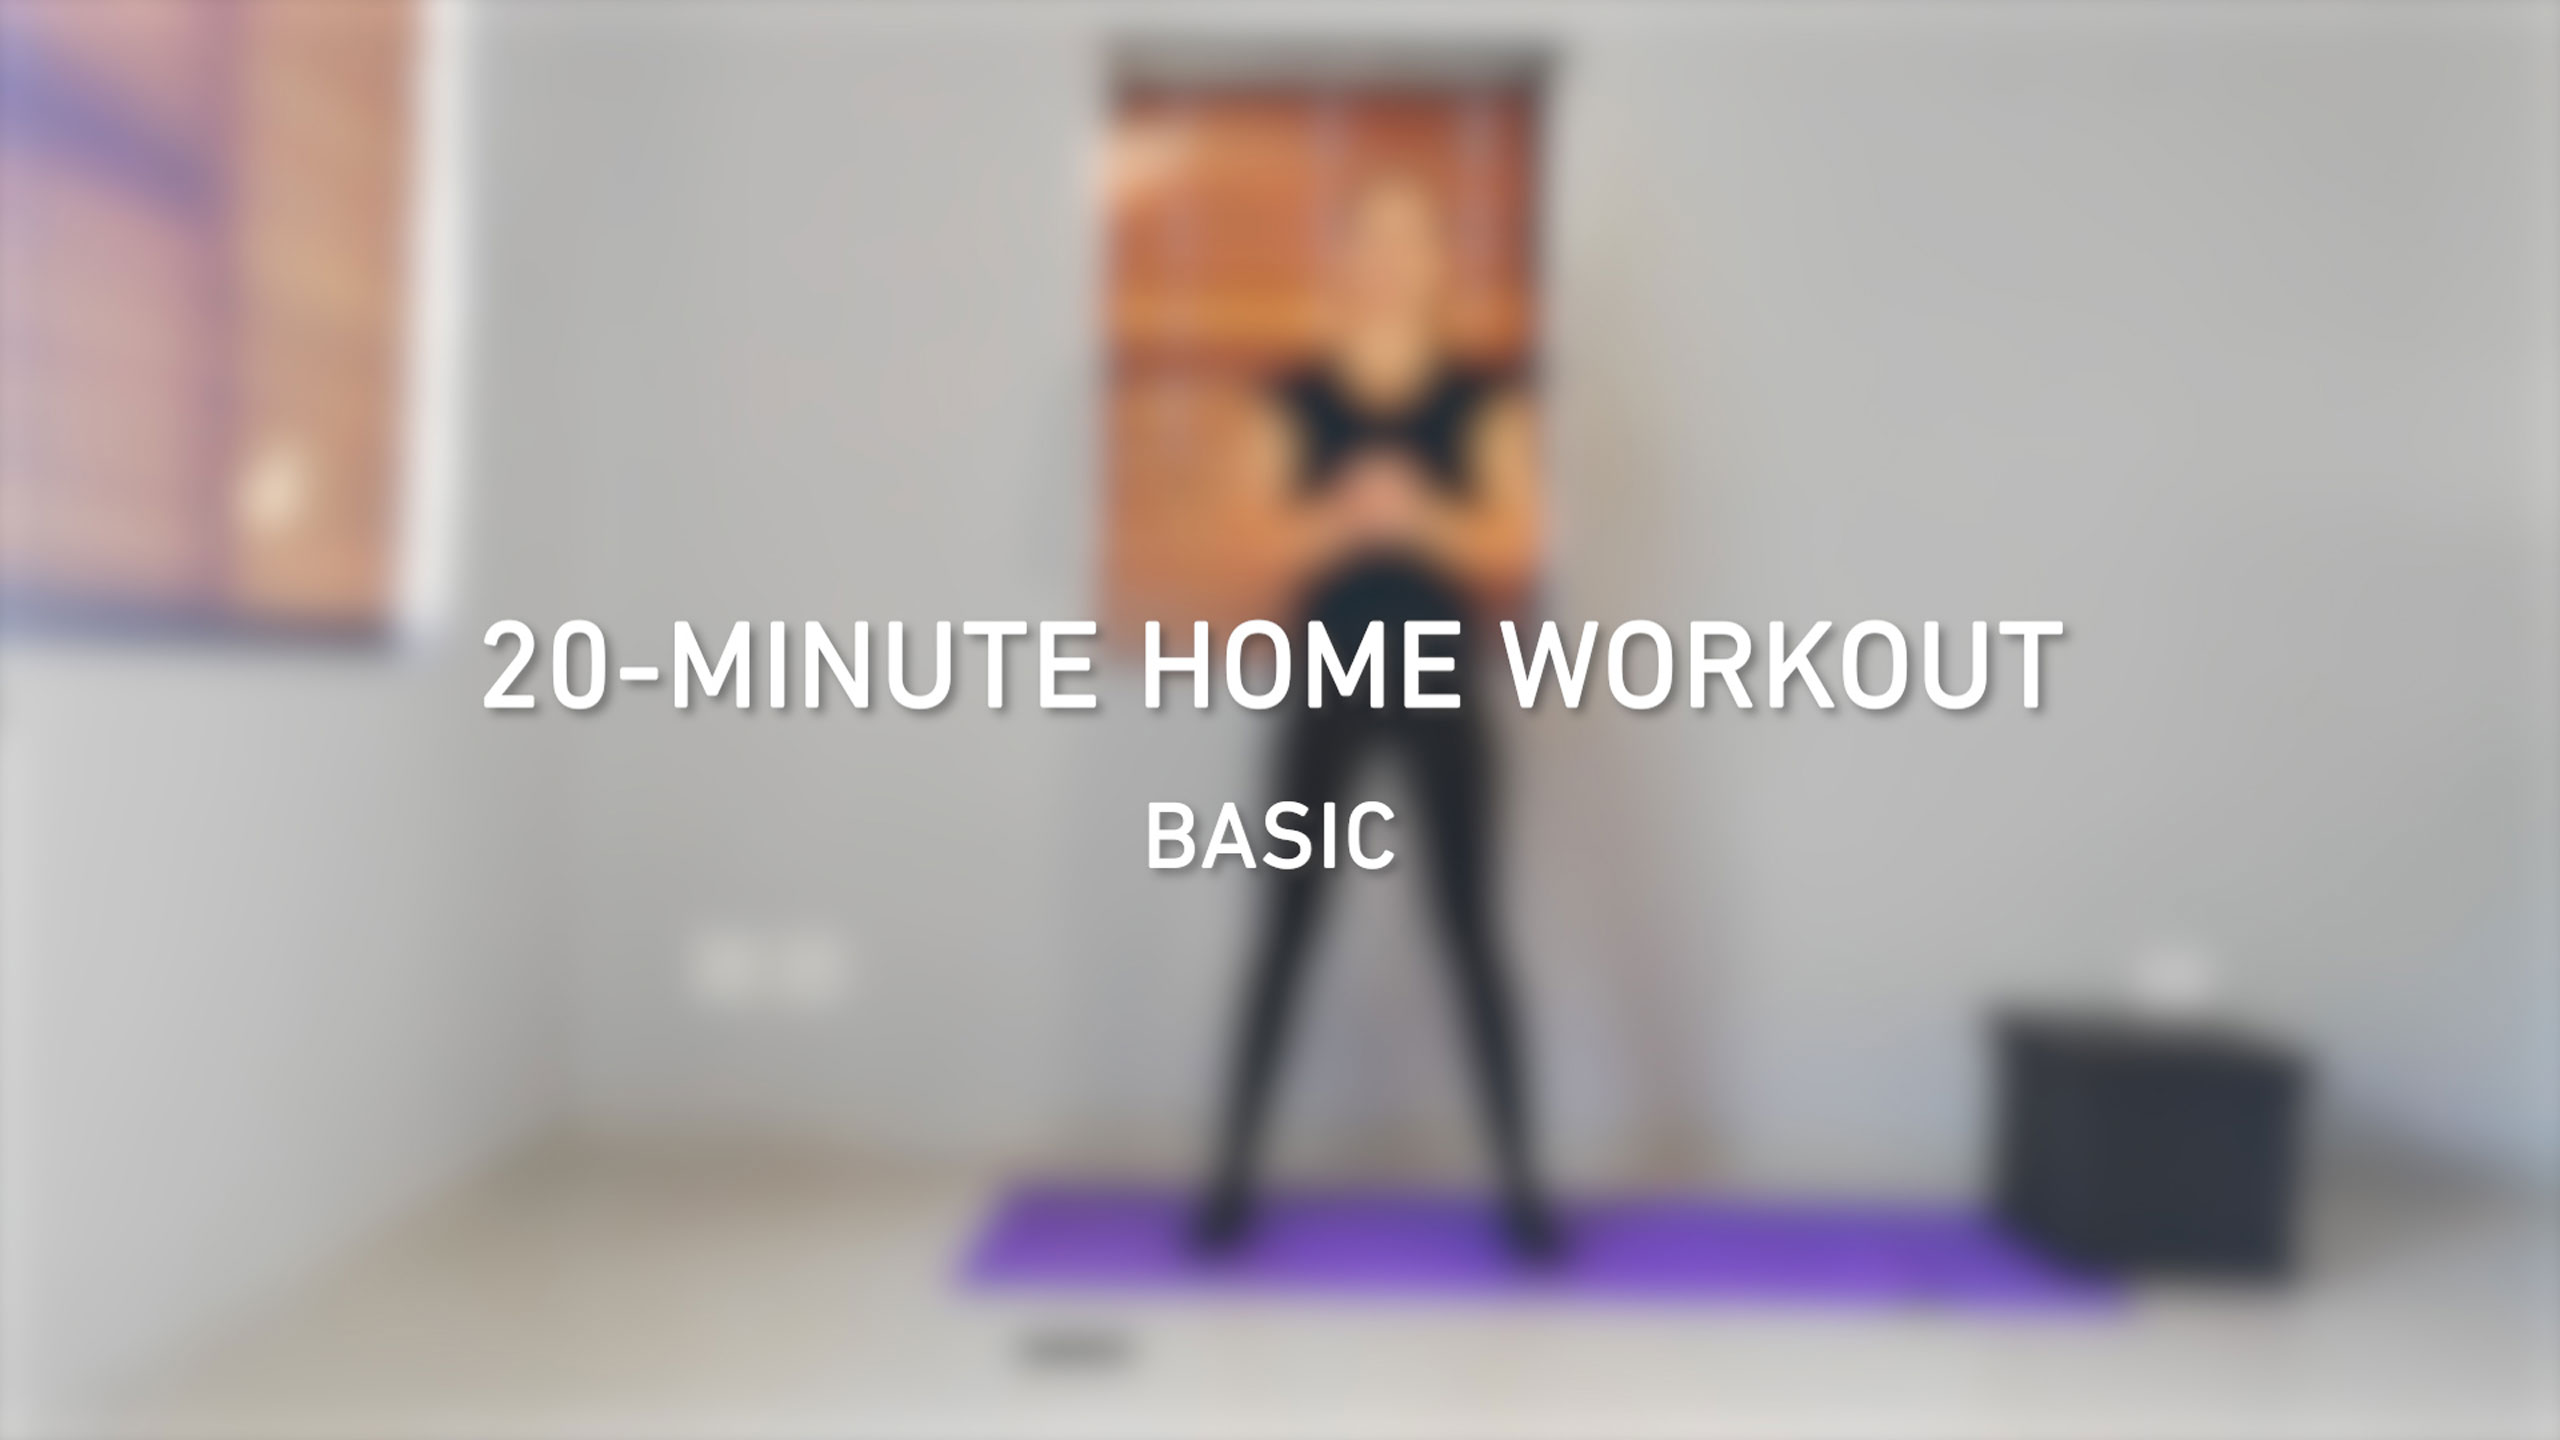 20-minute home workout videos | Basic level | BODYTEC